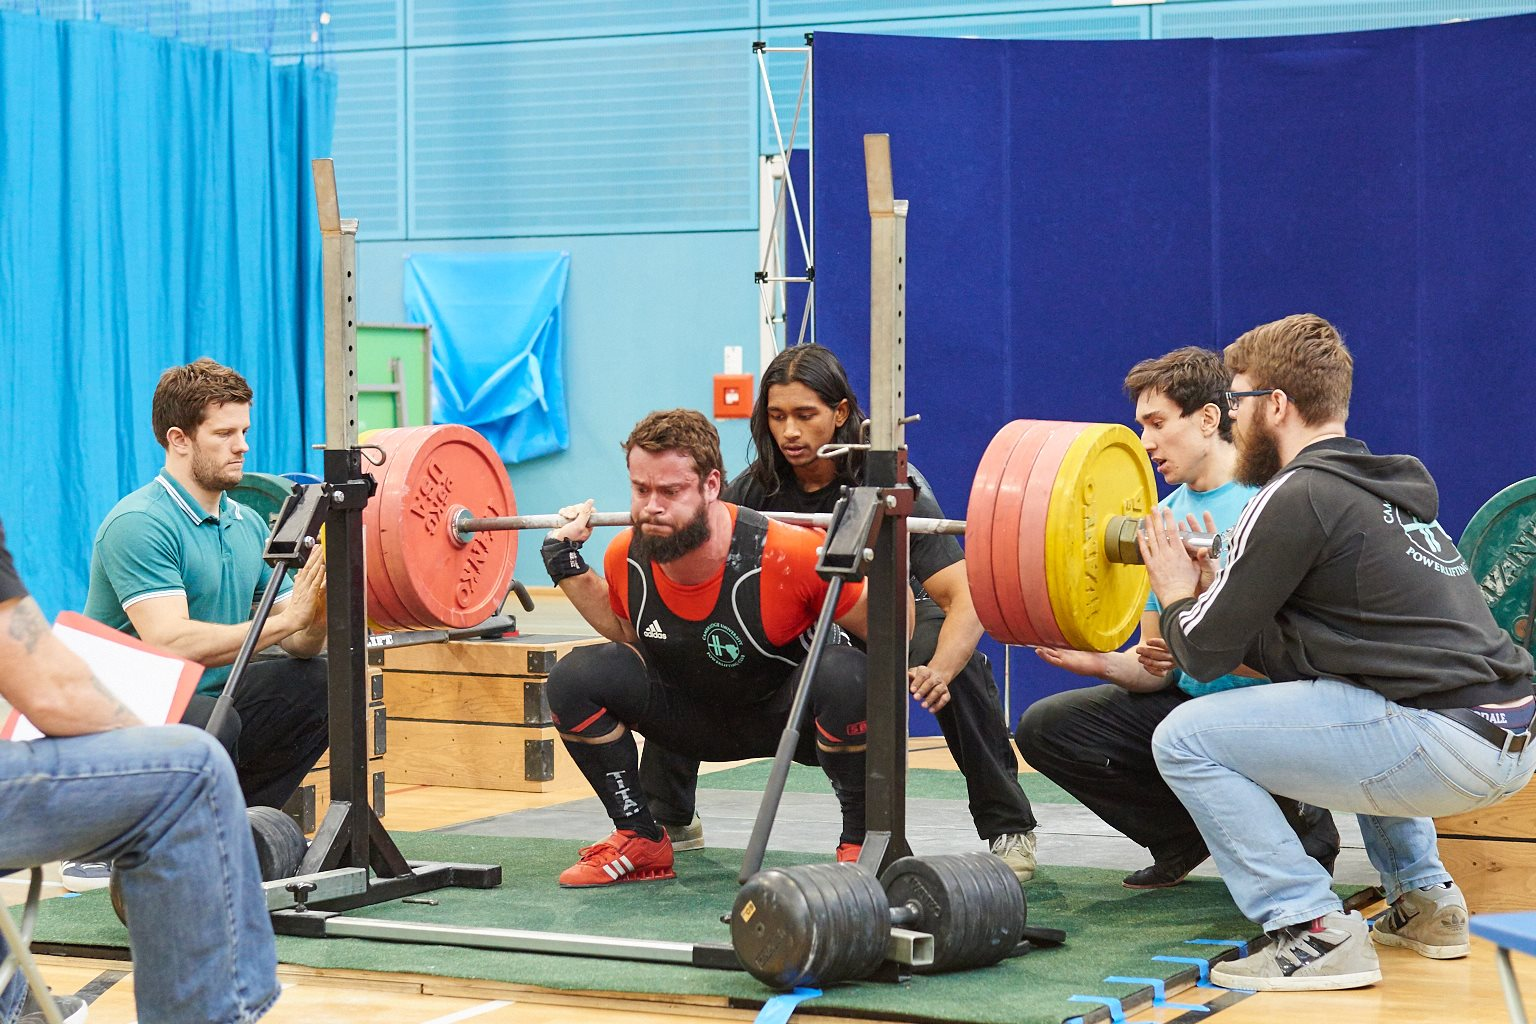 Wilberth Solano, 2014/15 President, winning his blue with this 205kg squat